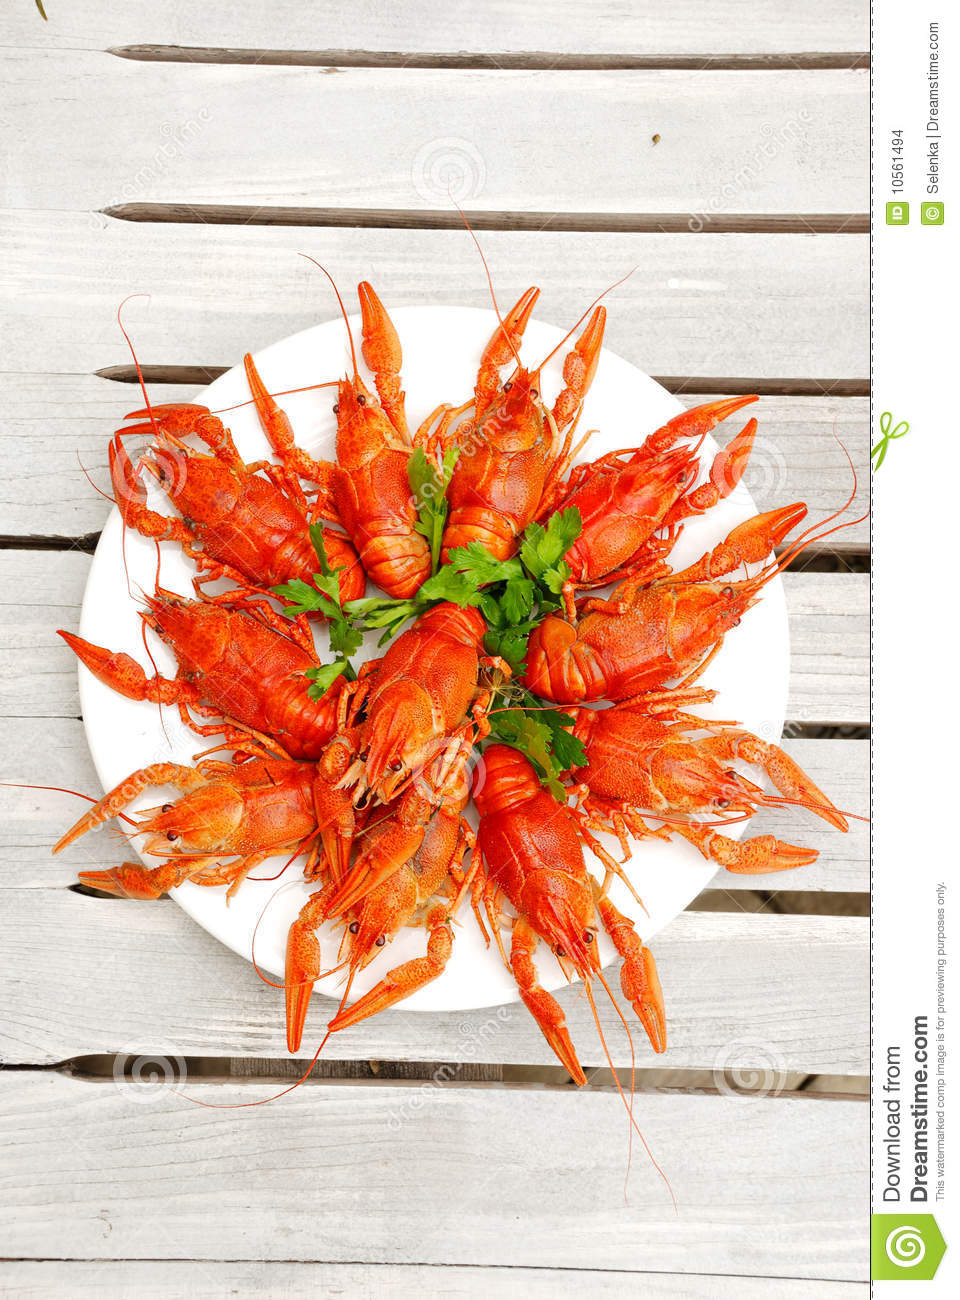 Download Lobsters on a plate stock photo. Image of claw, green - 10561494